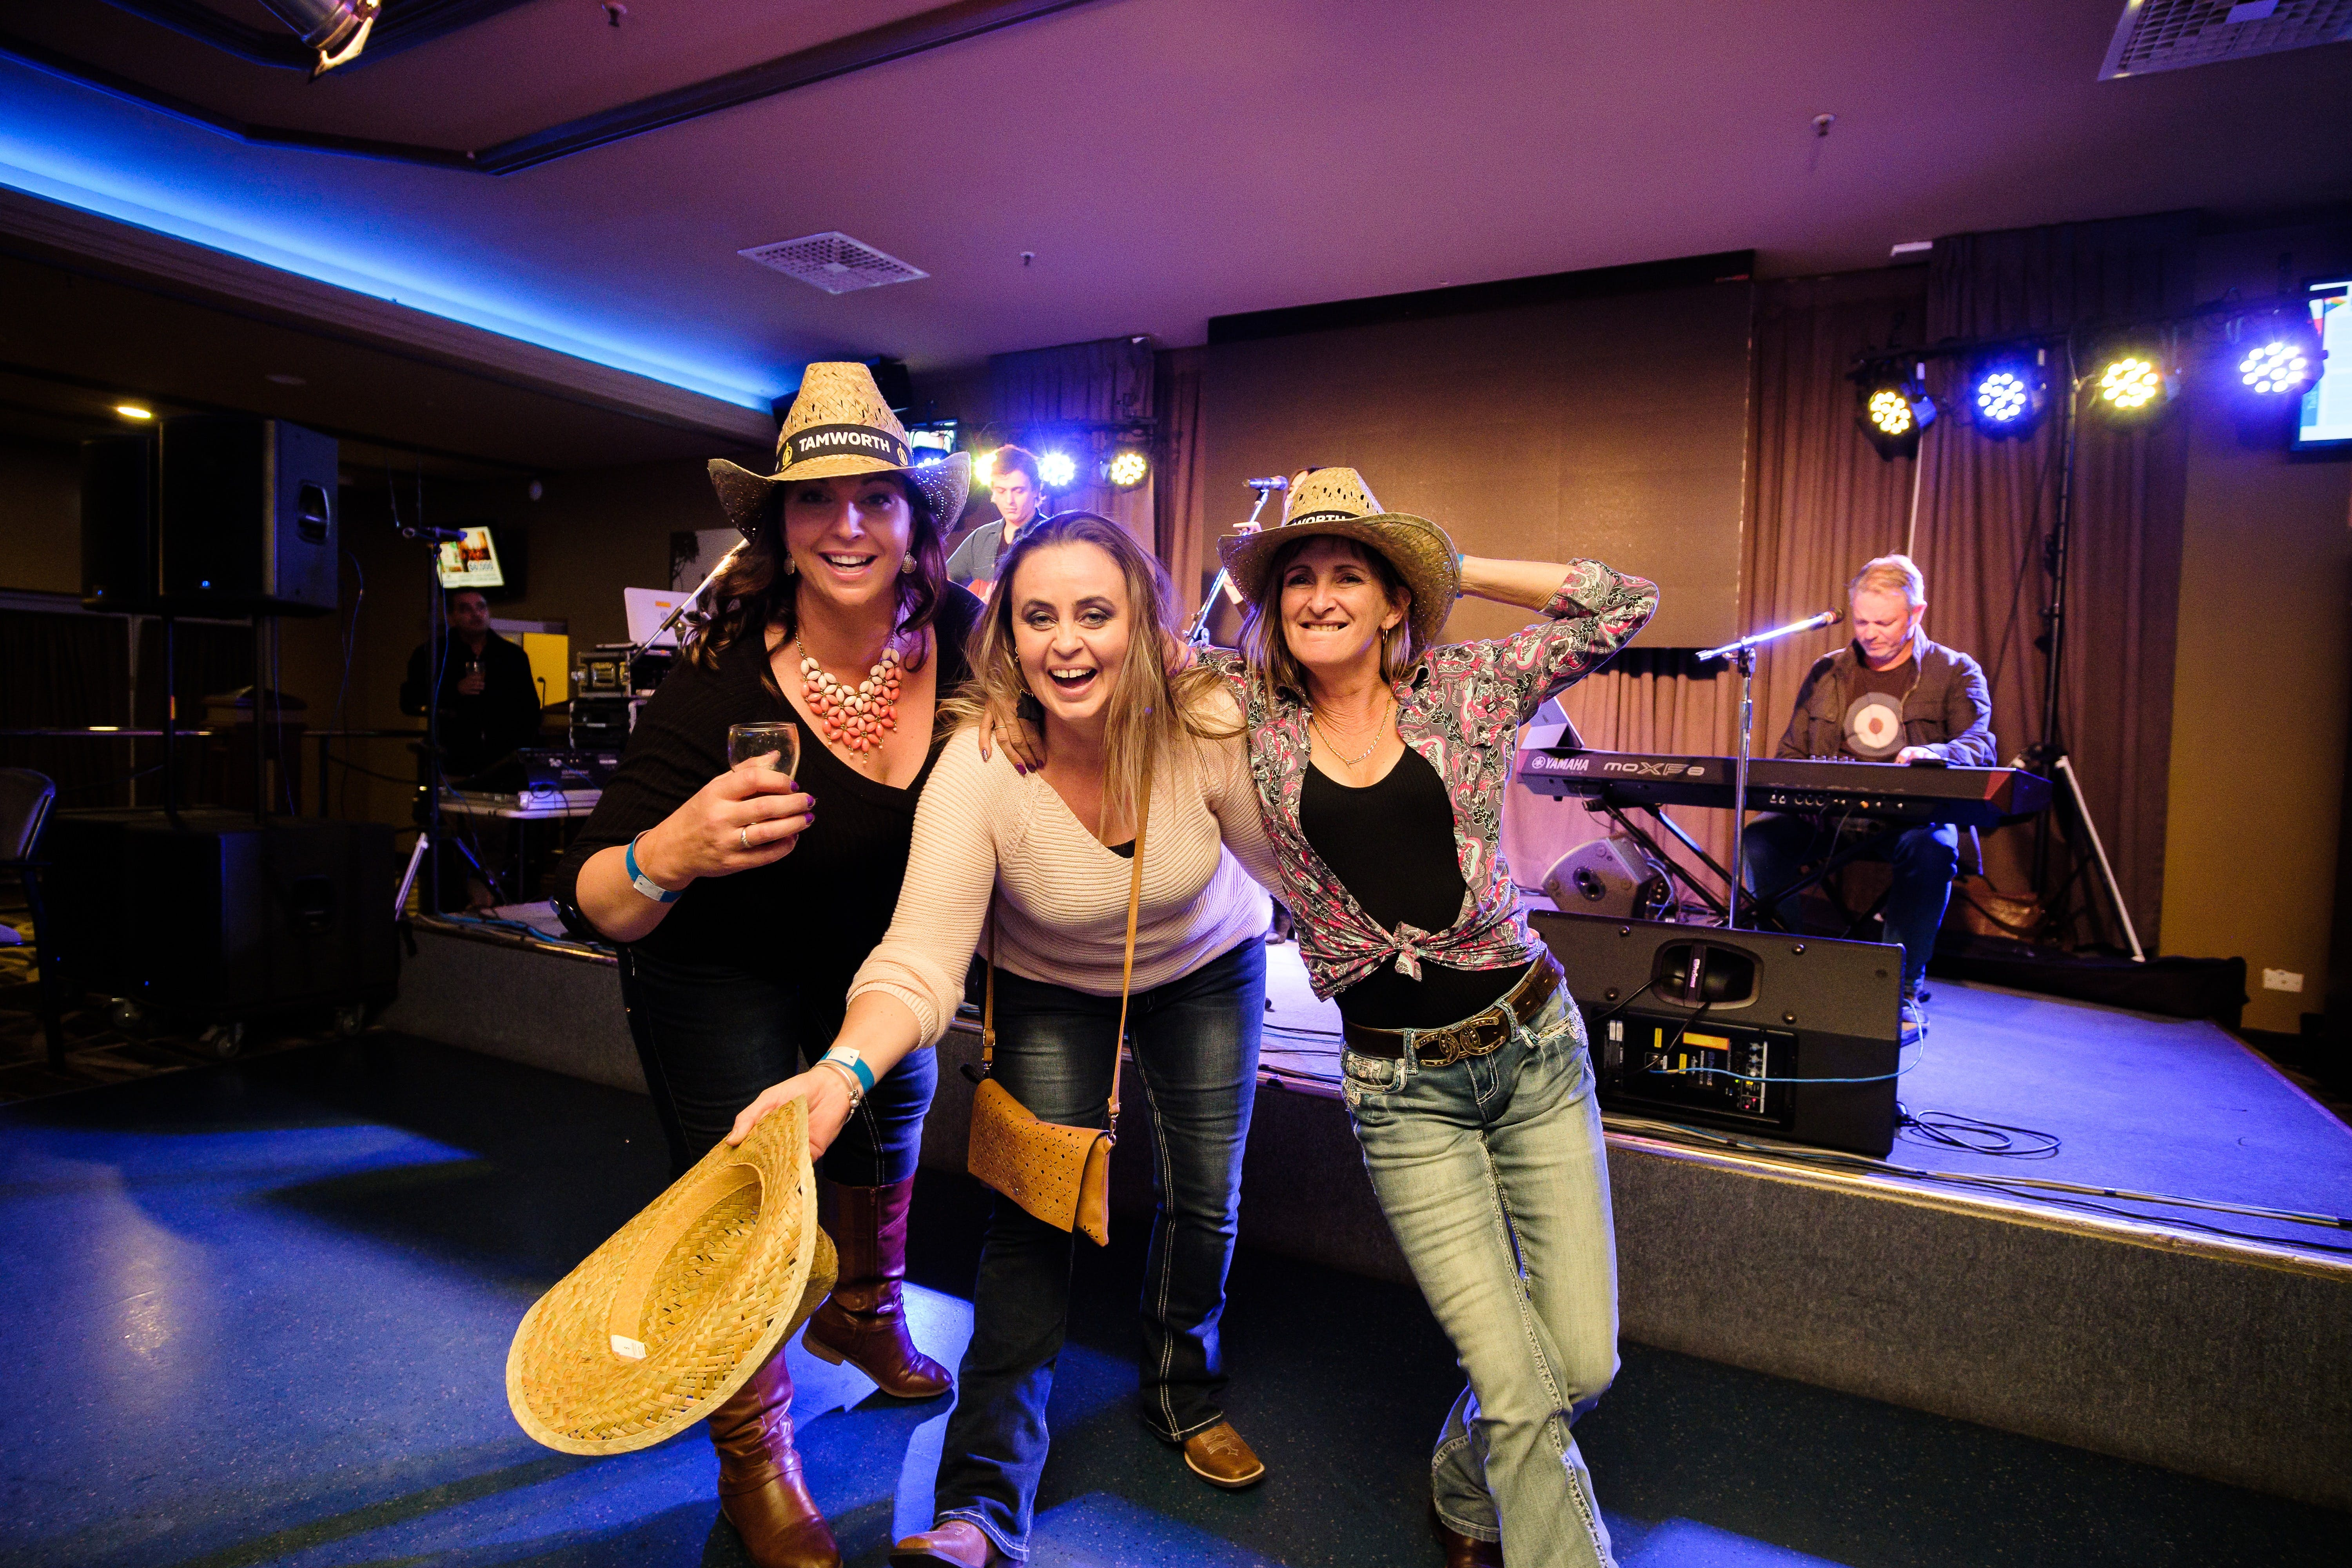 Hats Off to Country Music Festival - Accommodation Adelaide